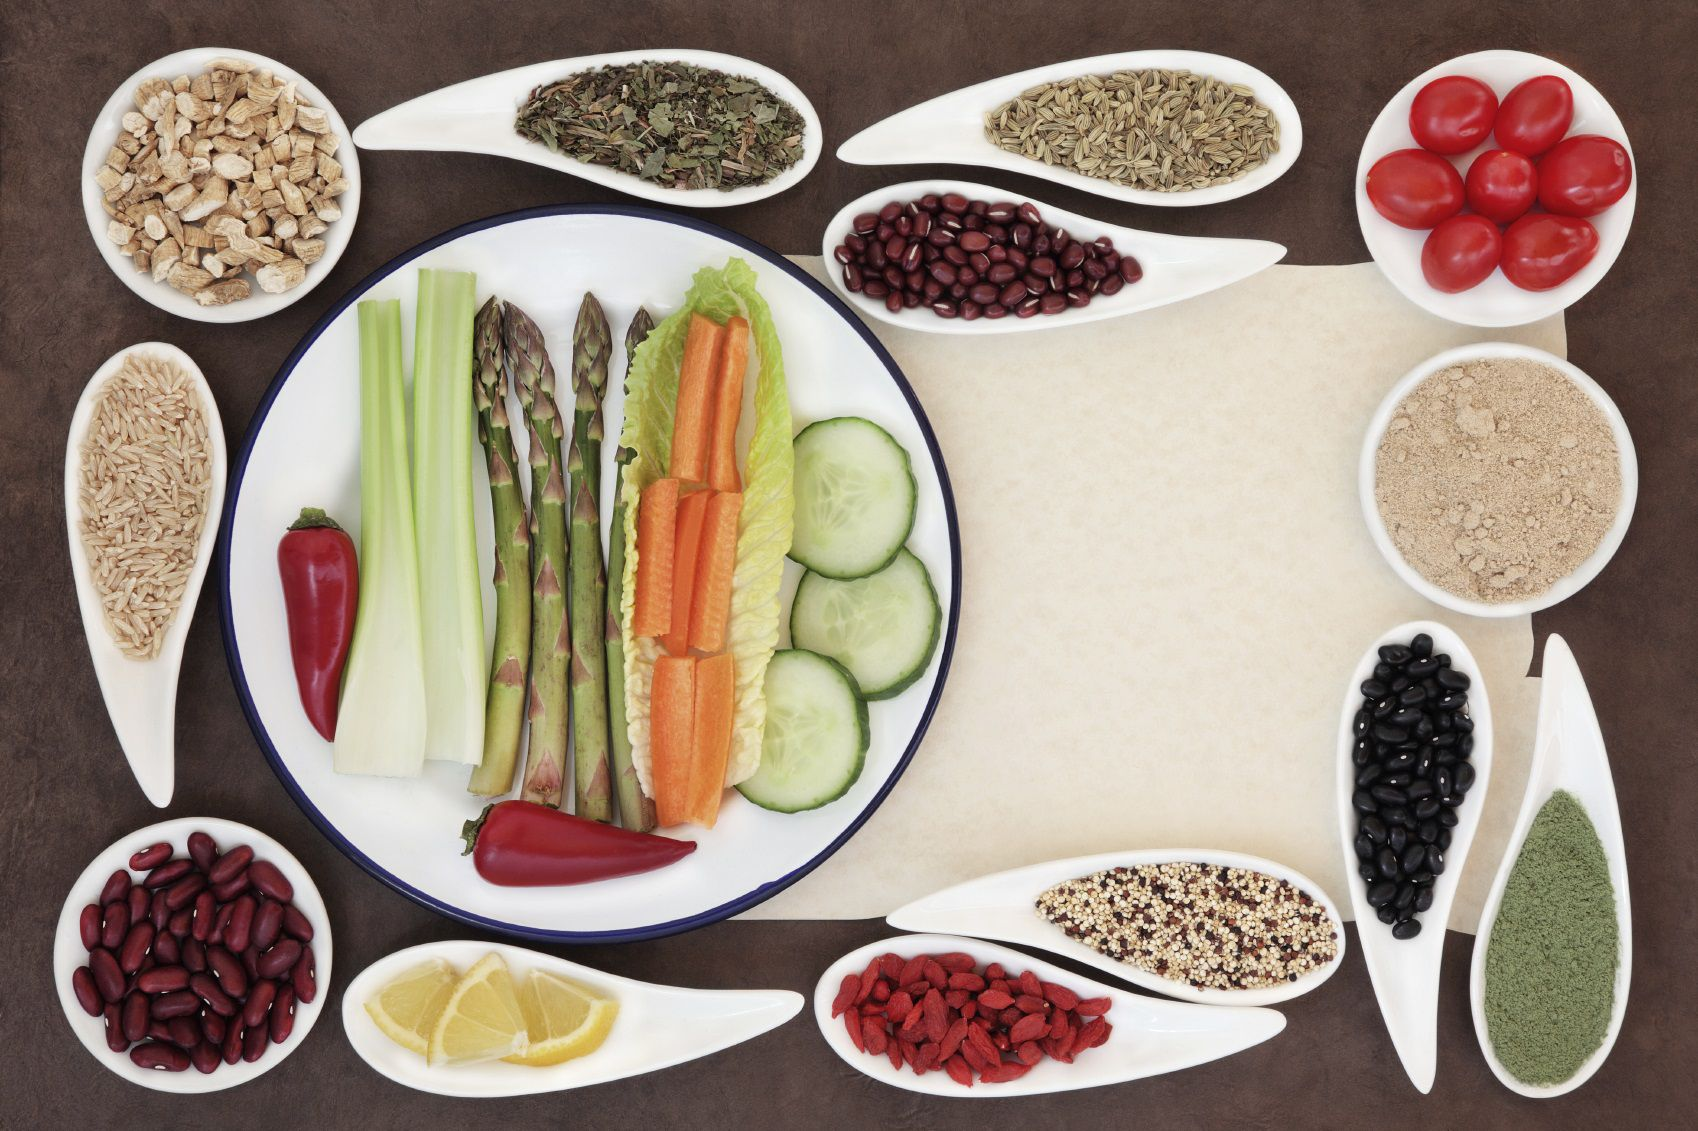 Insoluble Fiber Benefits And Sources